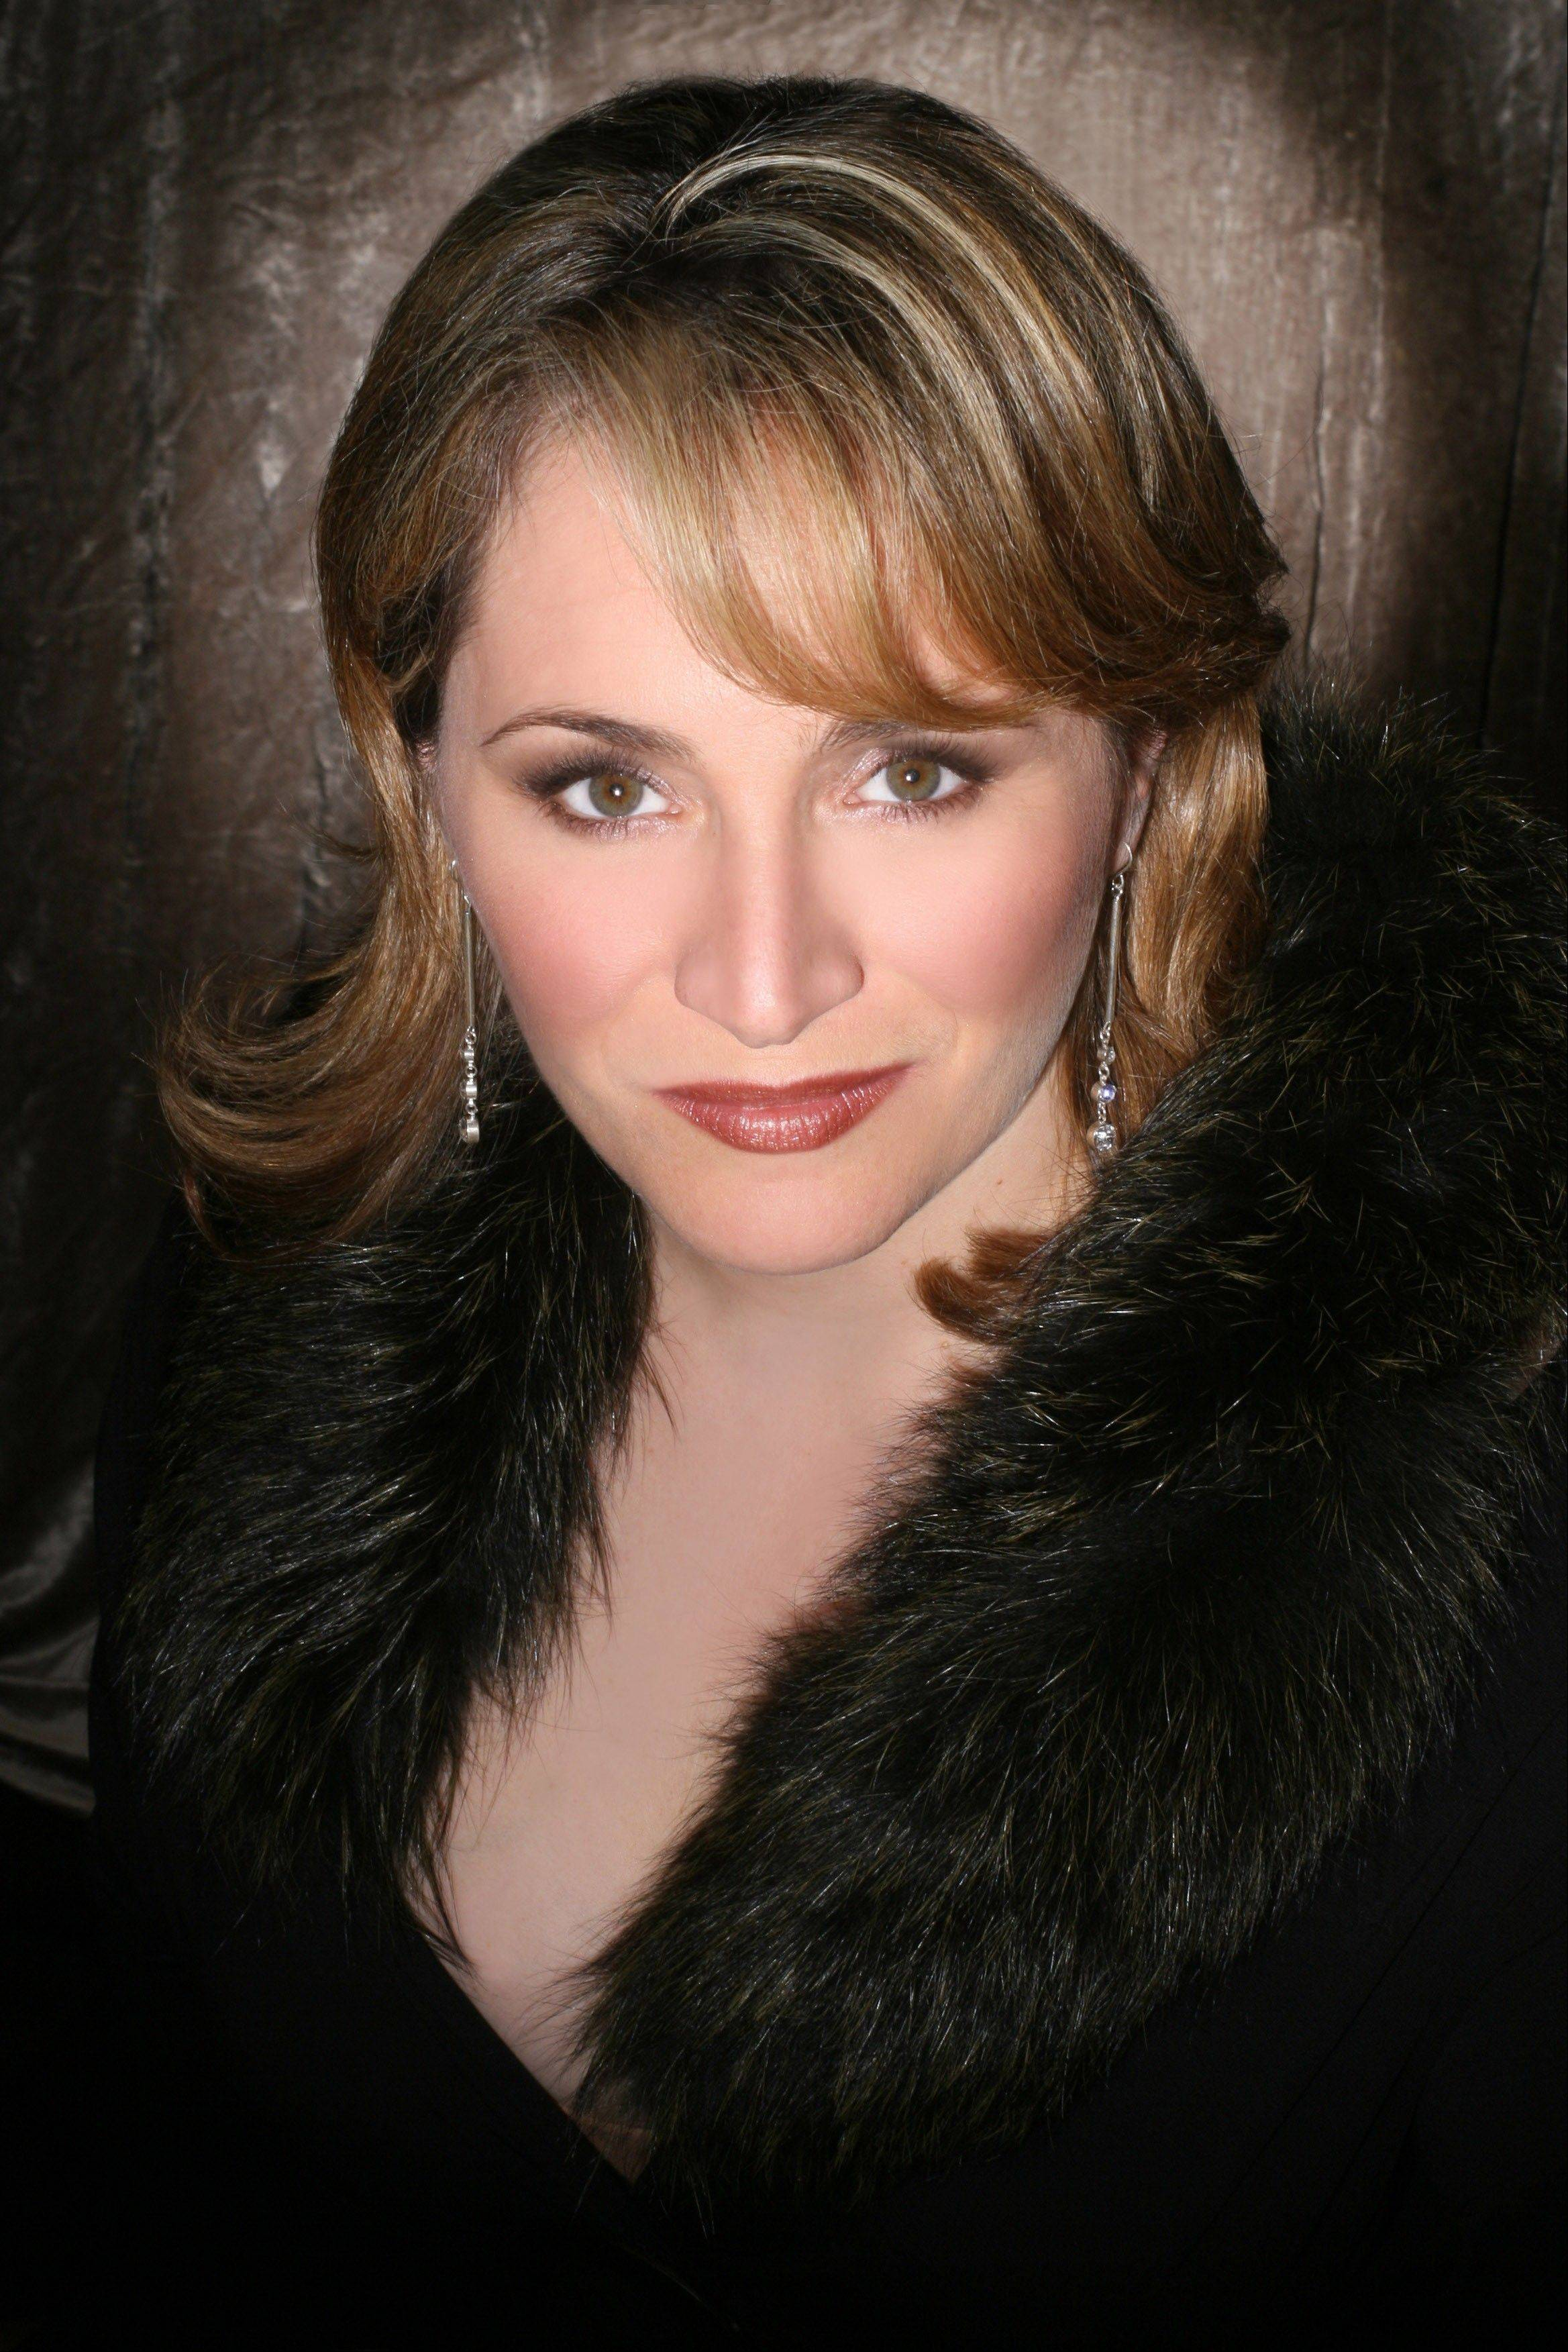 Opera soprano Patricia Racette teams with Broadway star Patti LuPone for a Chicago Symphony Orchestra gala benefit concert at the Ravinia Festival in Highland Park on Saturday, July 21.